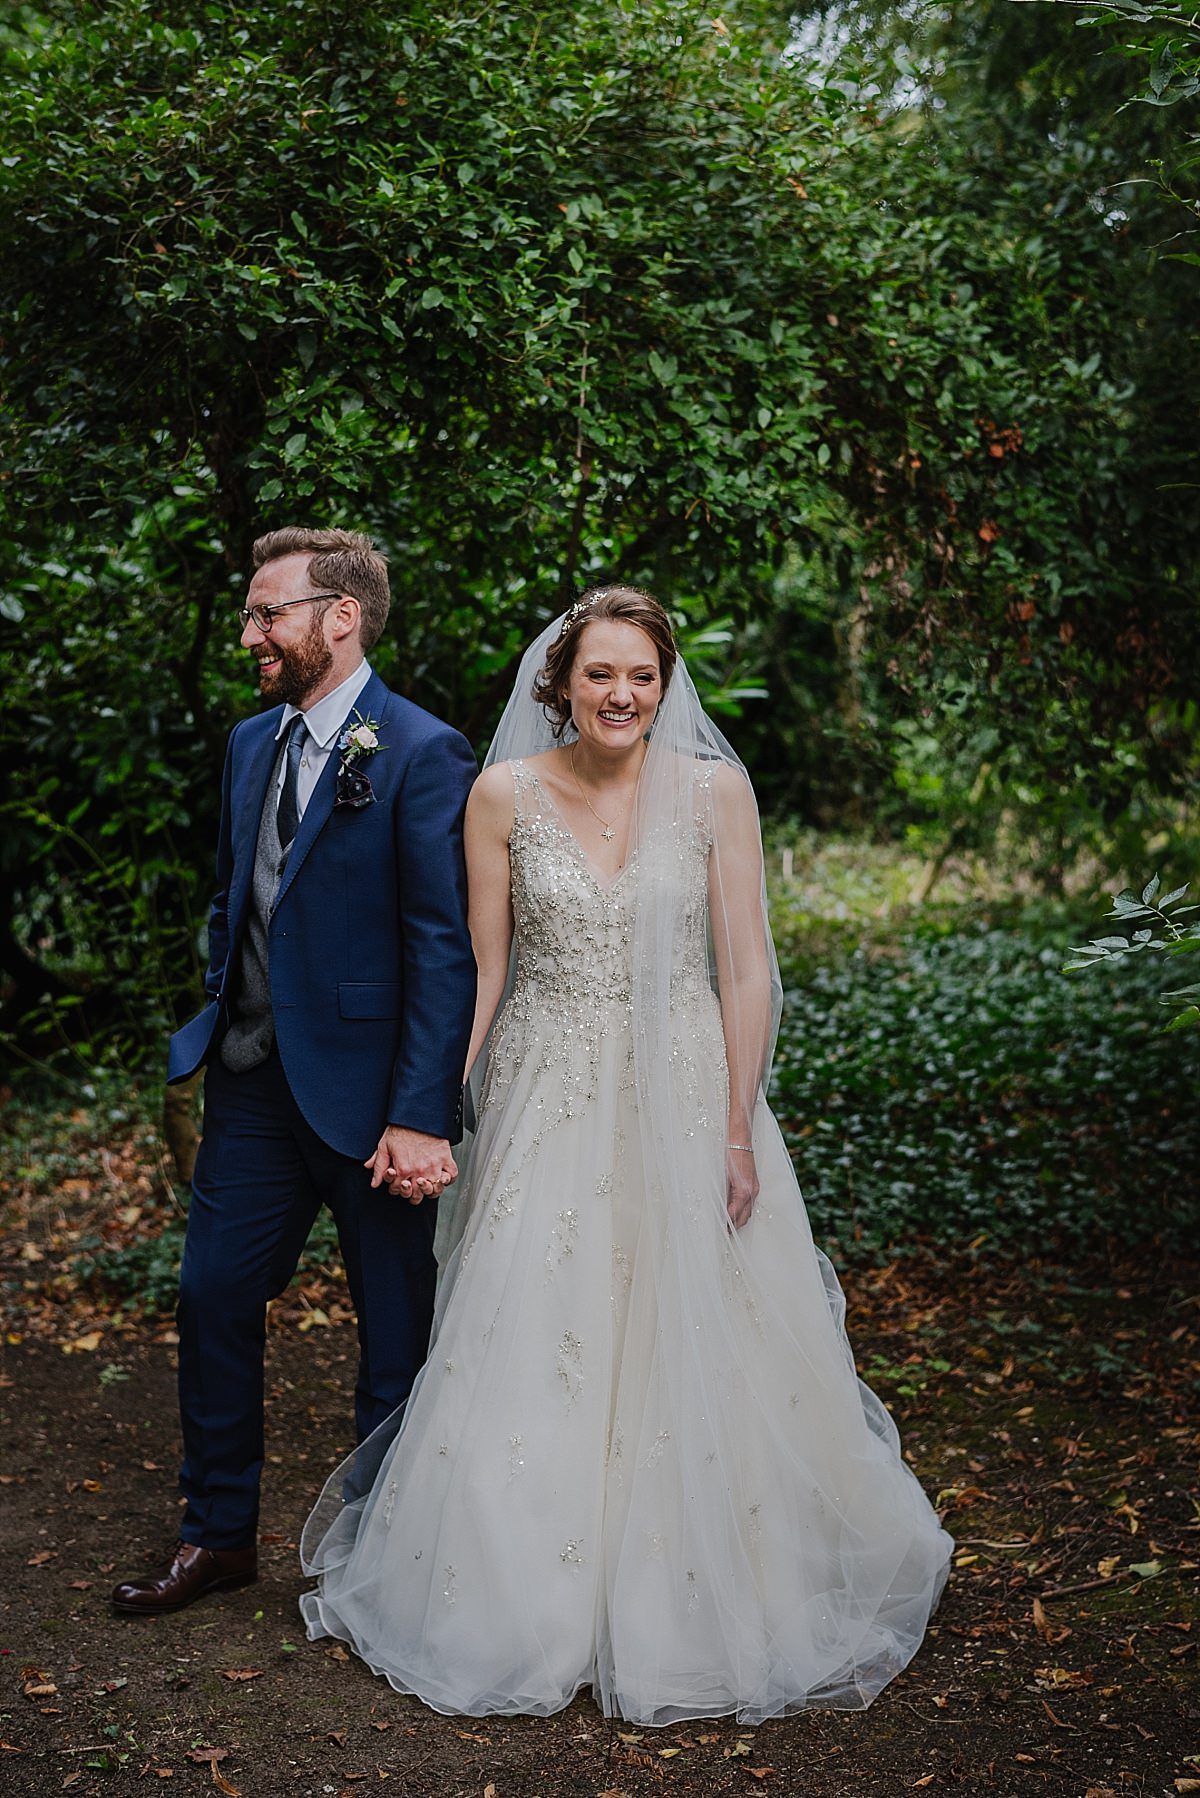 Bridal and groom portrait at Dorney Court Wedding